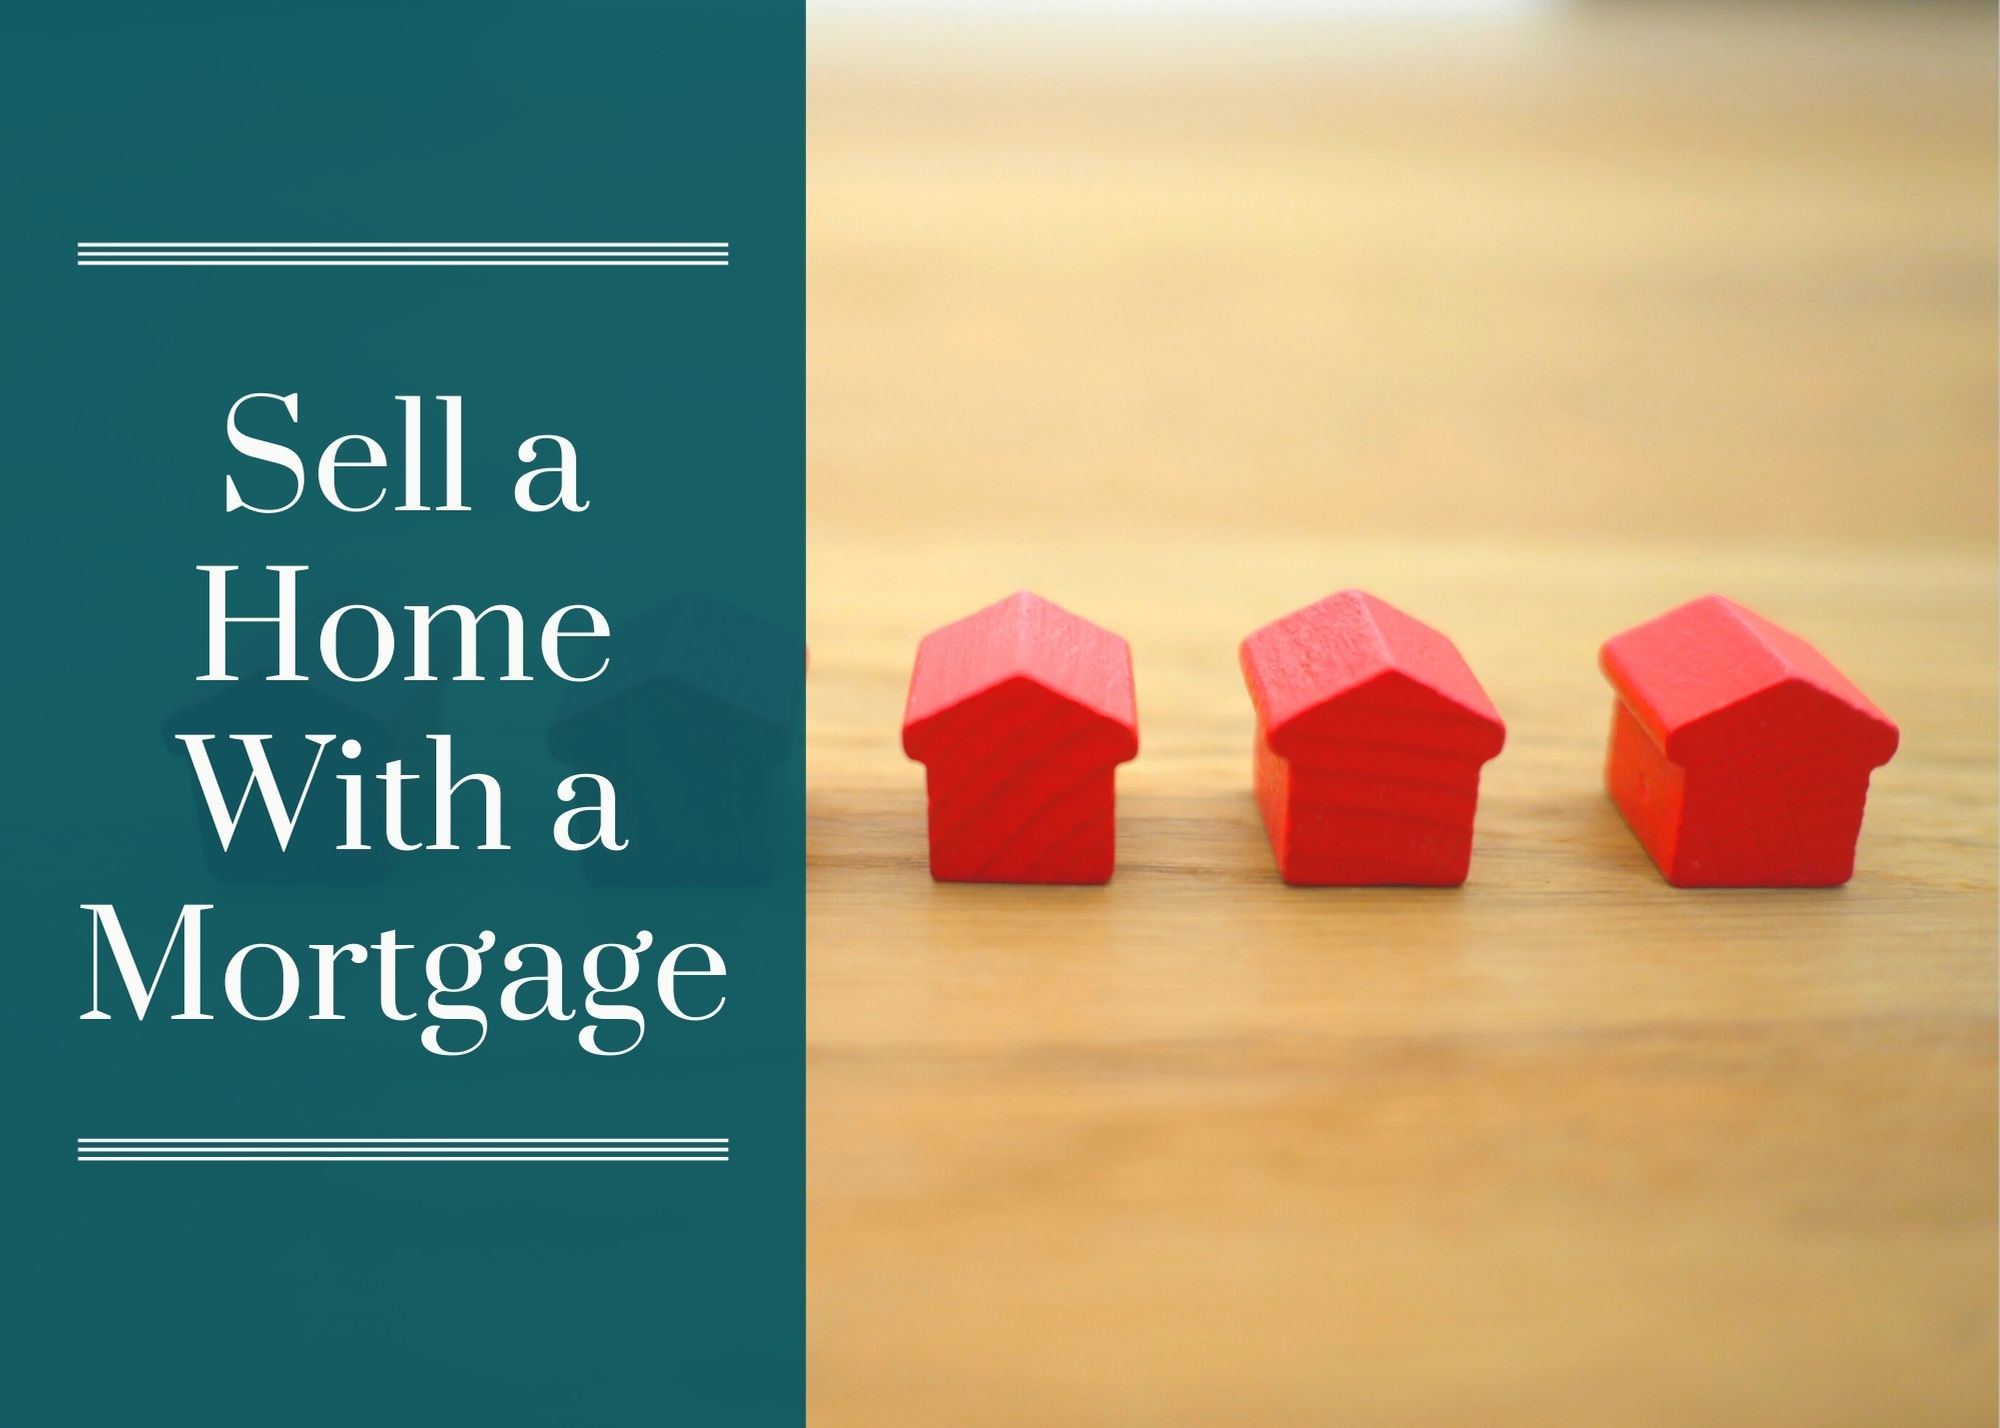 Sell a Home With a Mortgage